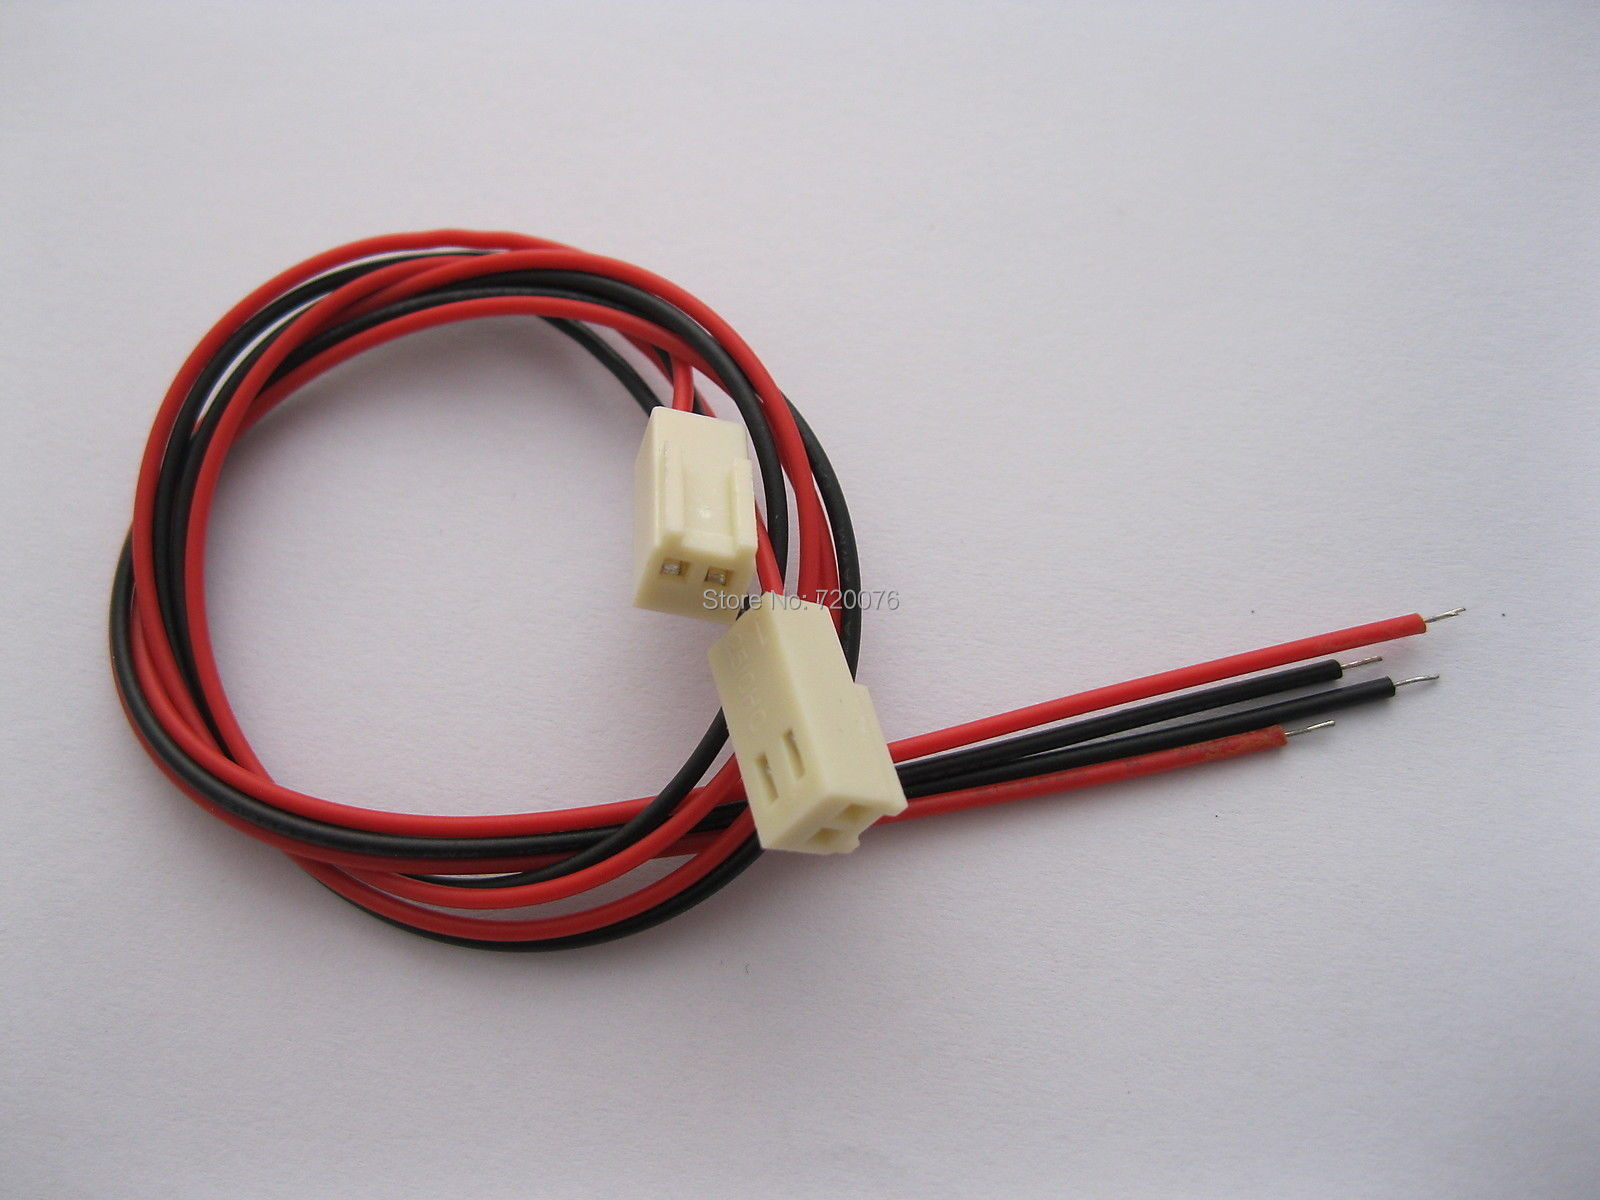 500 stks 2510 2.54mm Pitch 2 Pin Vrouwelijke Connector met 26AWG 300mm Leads Kabel - 3